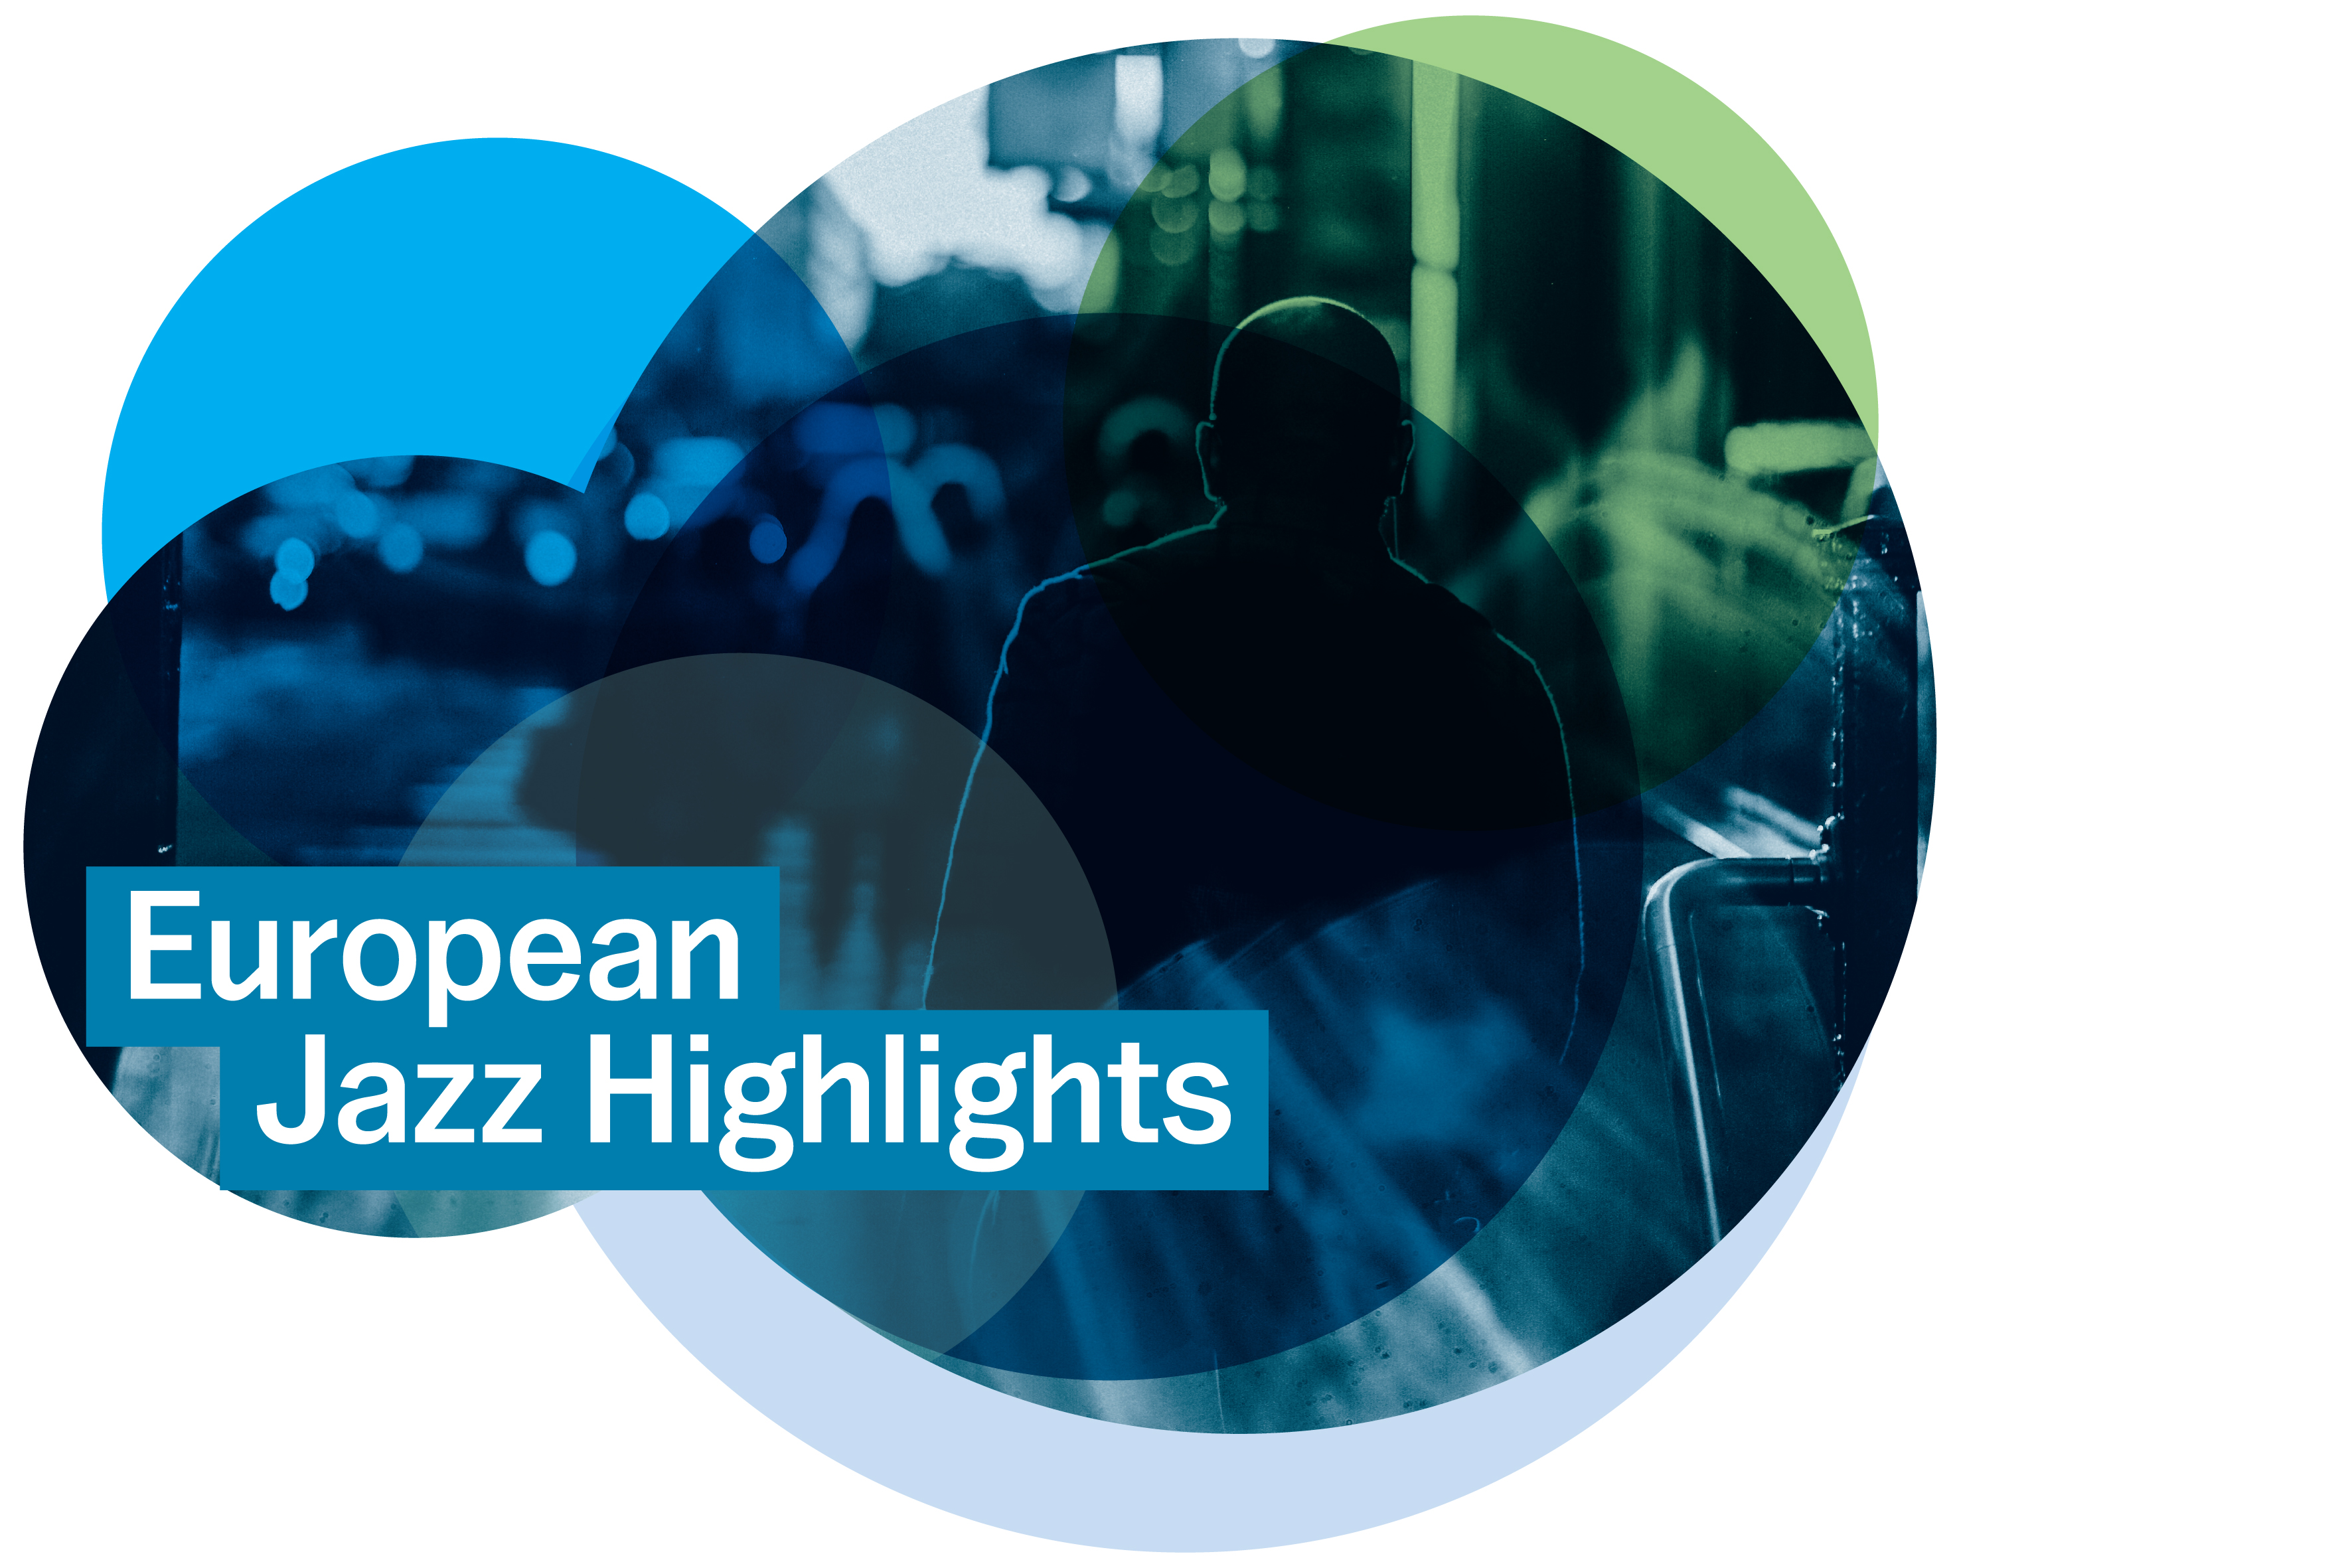 European Jazz Highlights